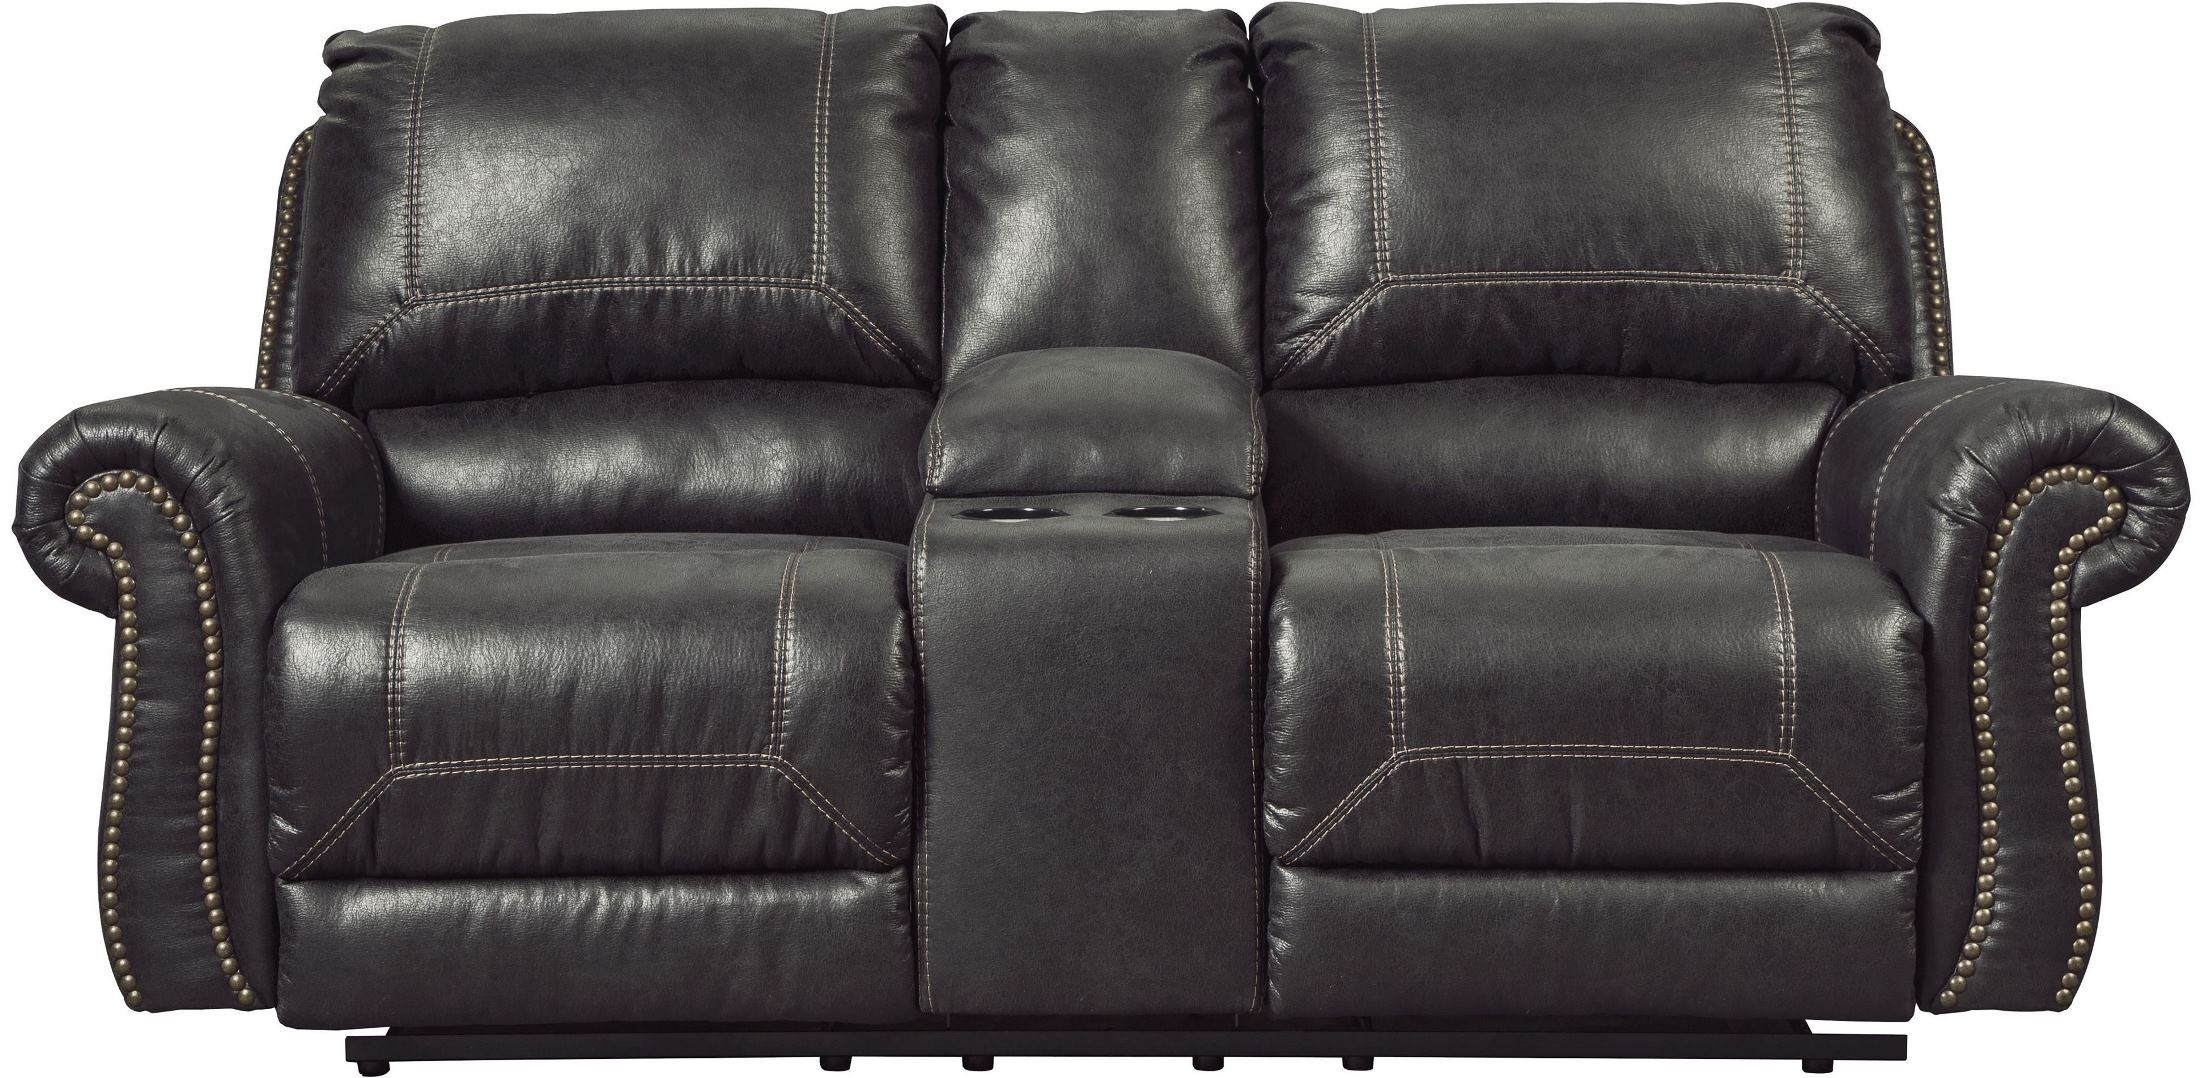 black reclining sofa with console denim fabric sofas milhaven double power loveseat